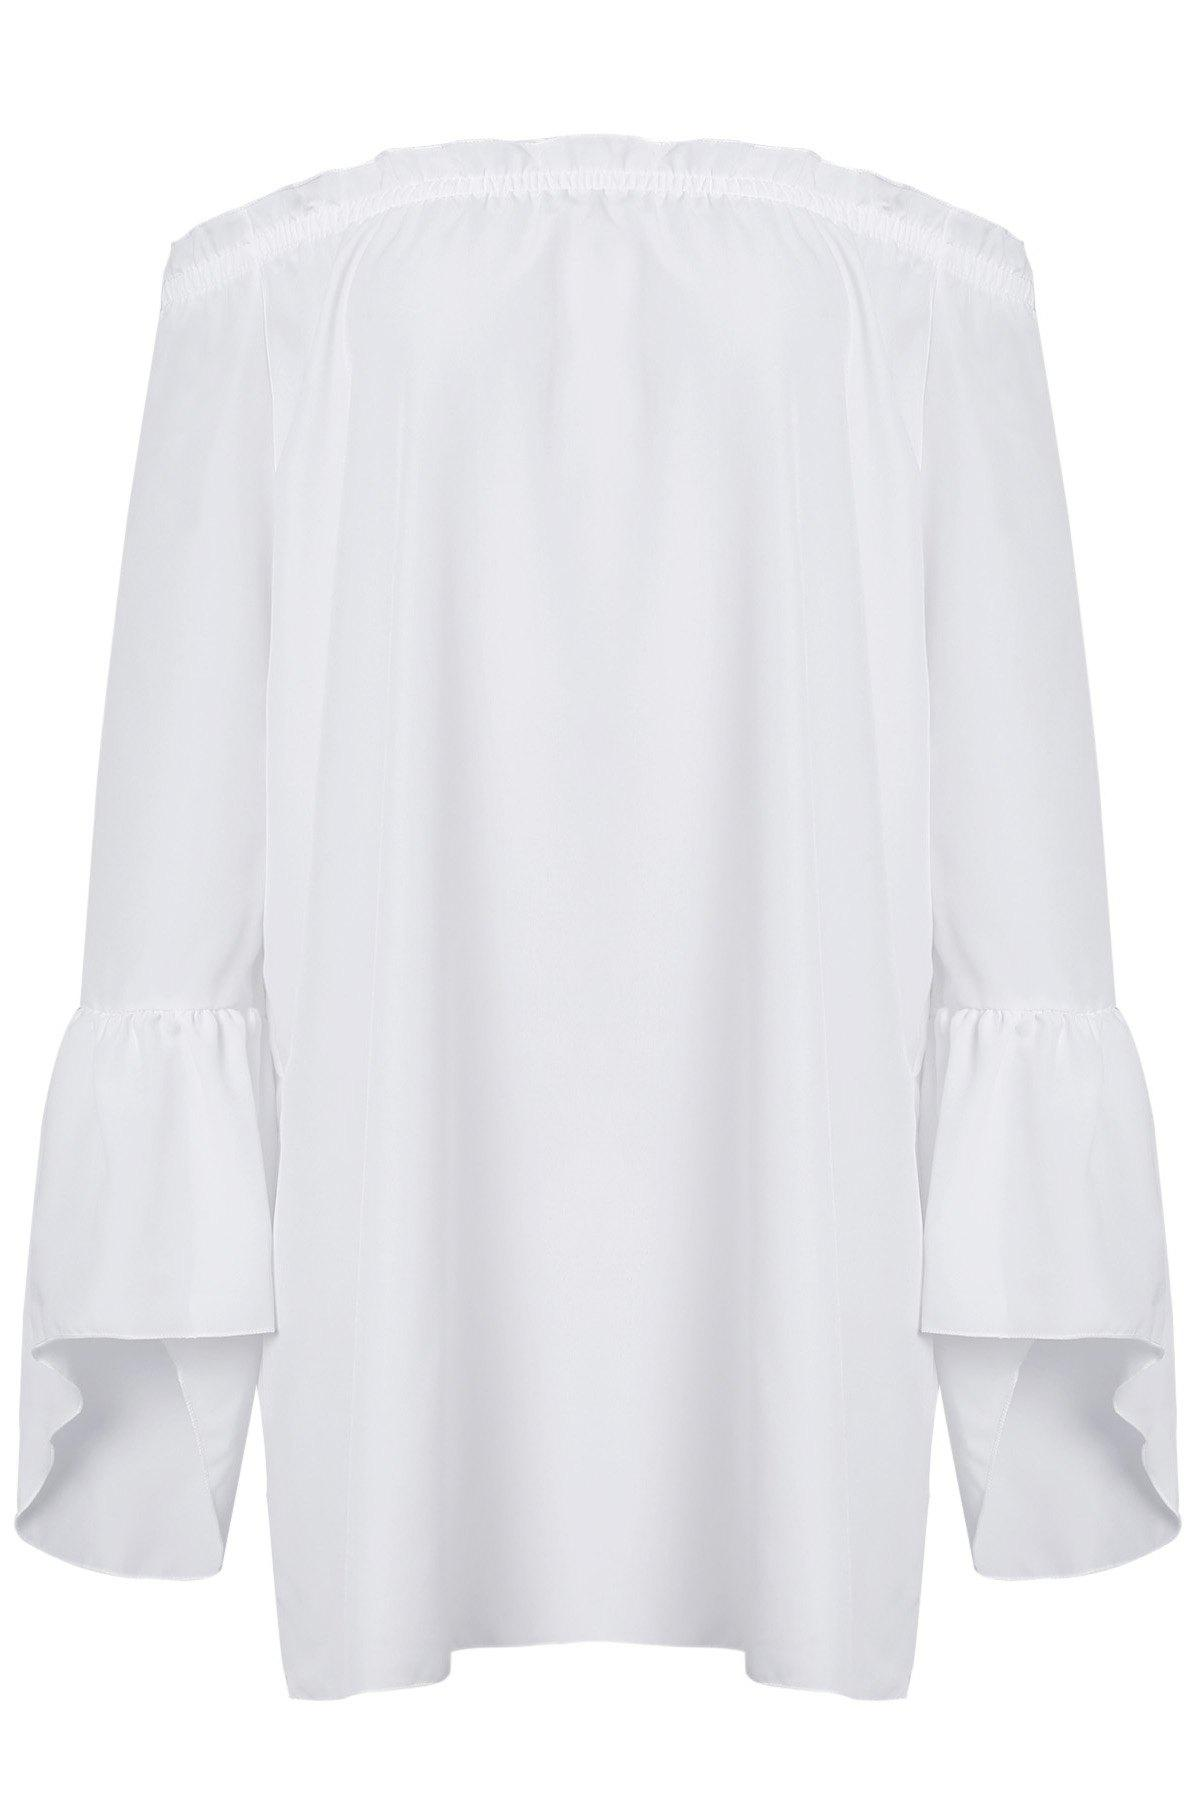 Sexy Off The Shoulder Solid Color Flared Sleeve Dress For Women - WHITE XL